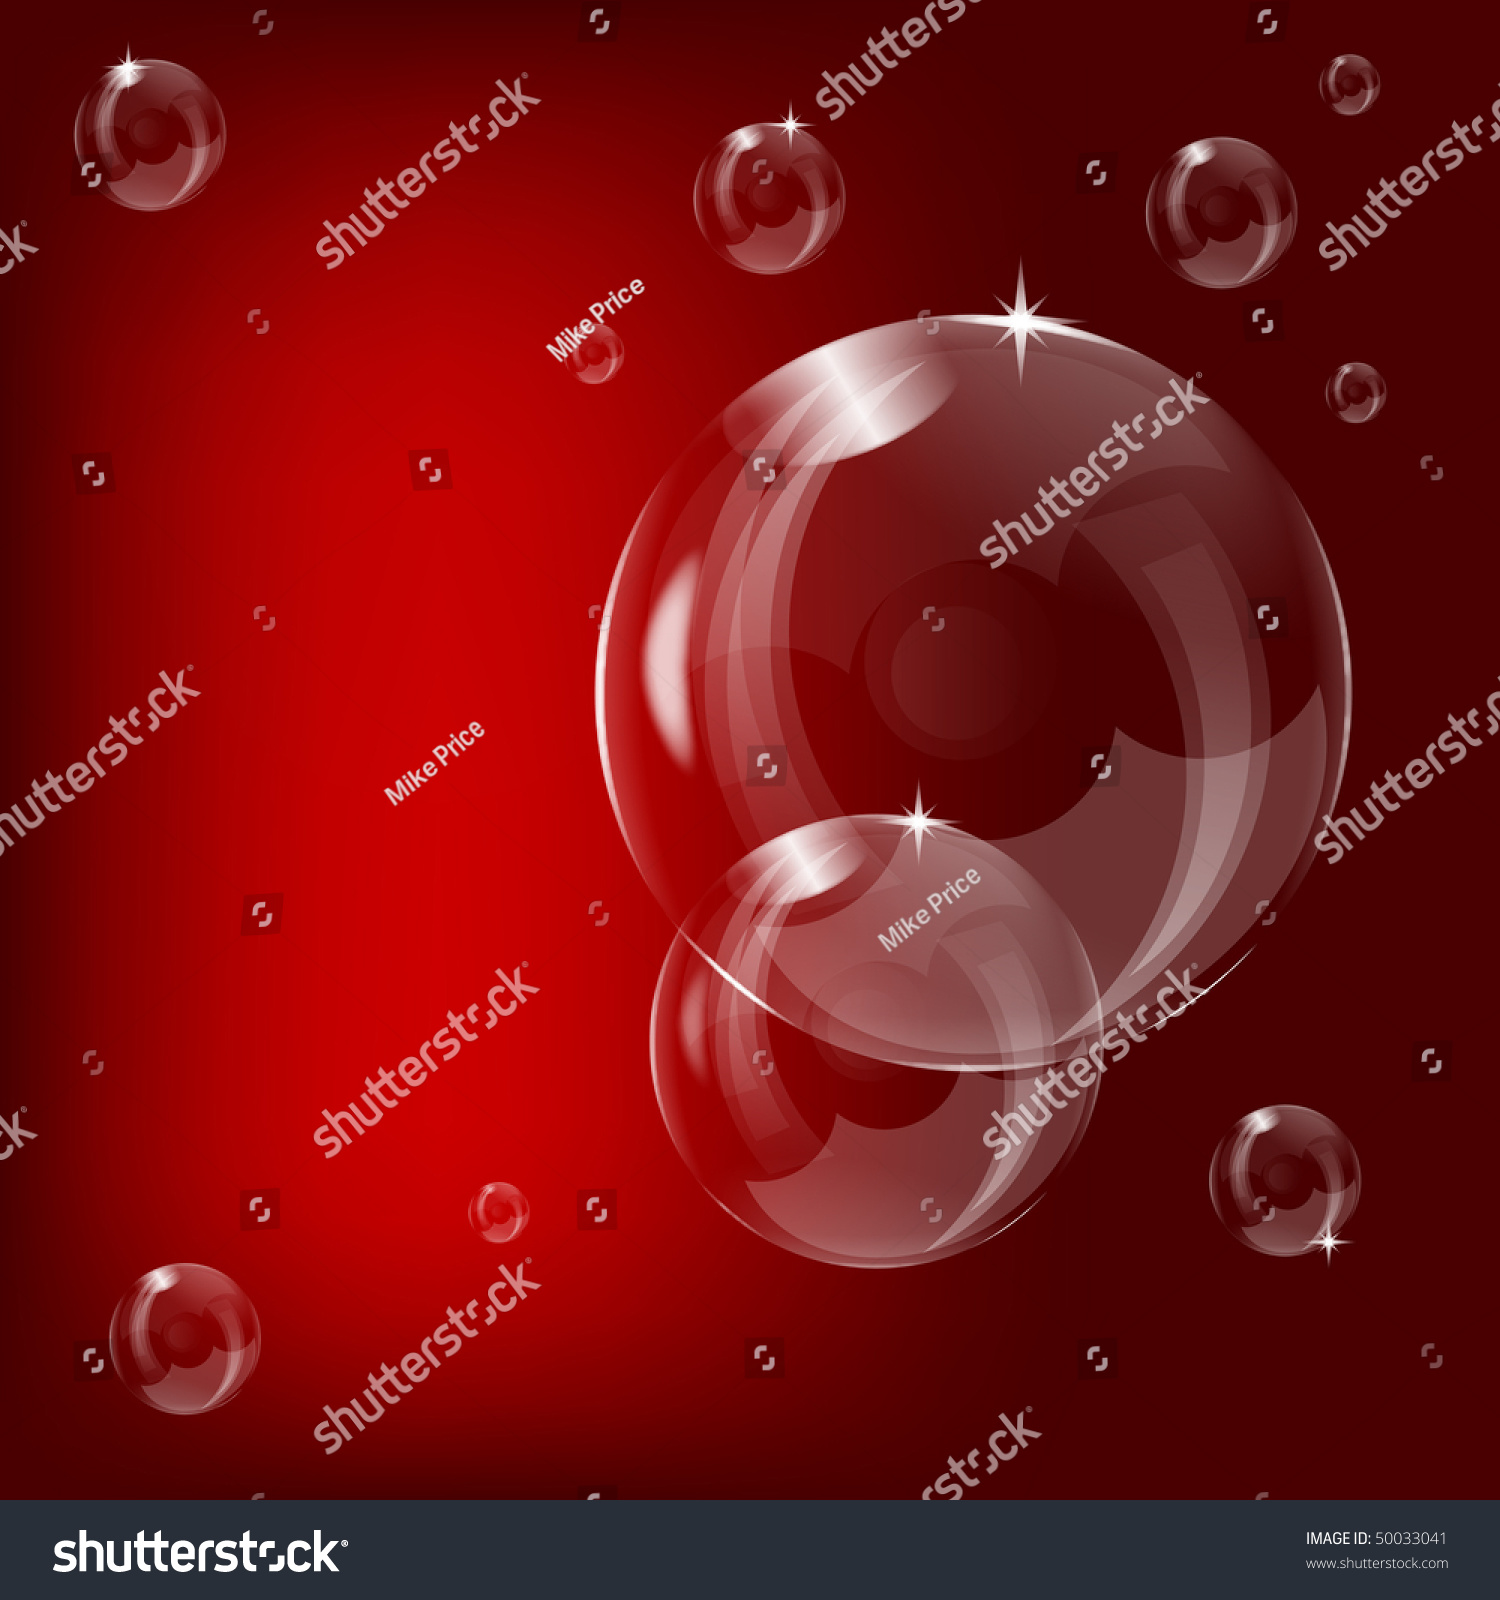 Soap bubble background download free vector art stock graphics -  Vectors Illustrations Footage Music A Transparent Soap Bubble Design On A Red Background With Room For Text